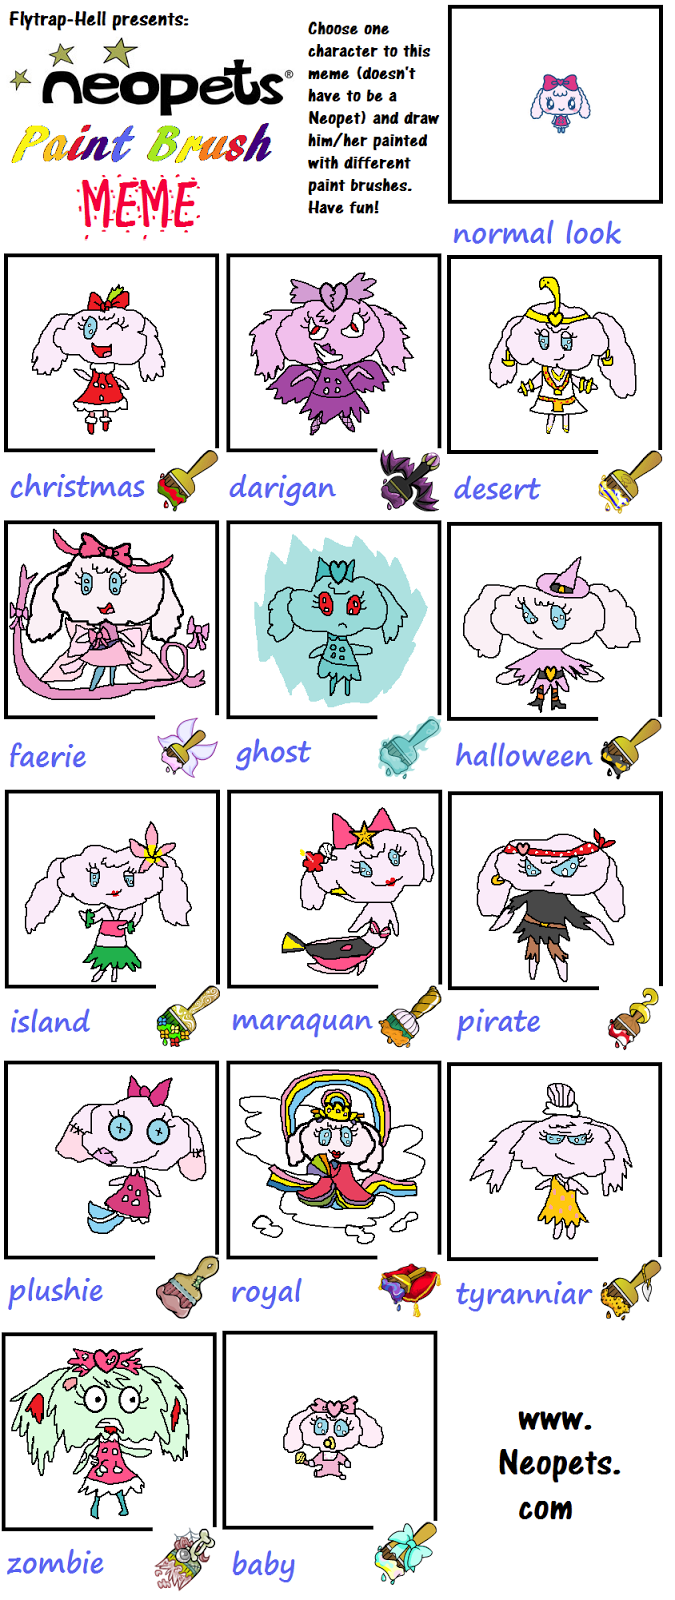 Plushie Paint Brush Neopets